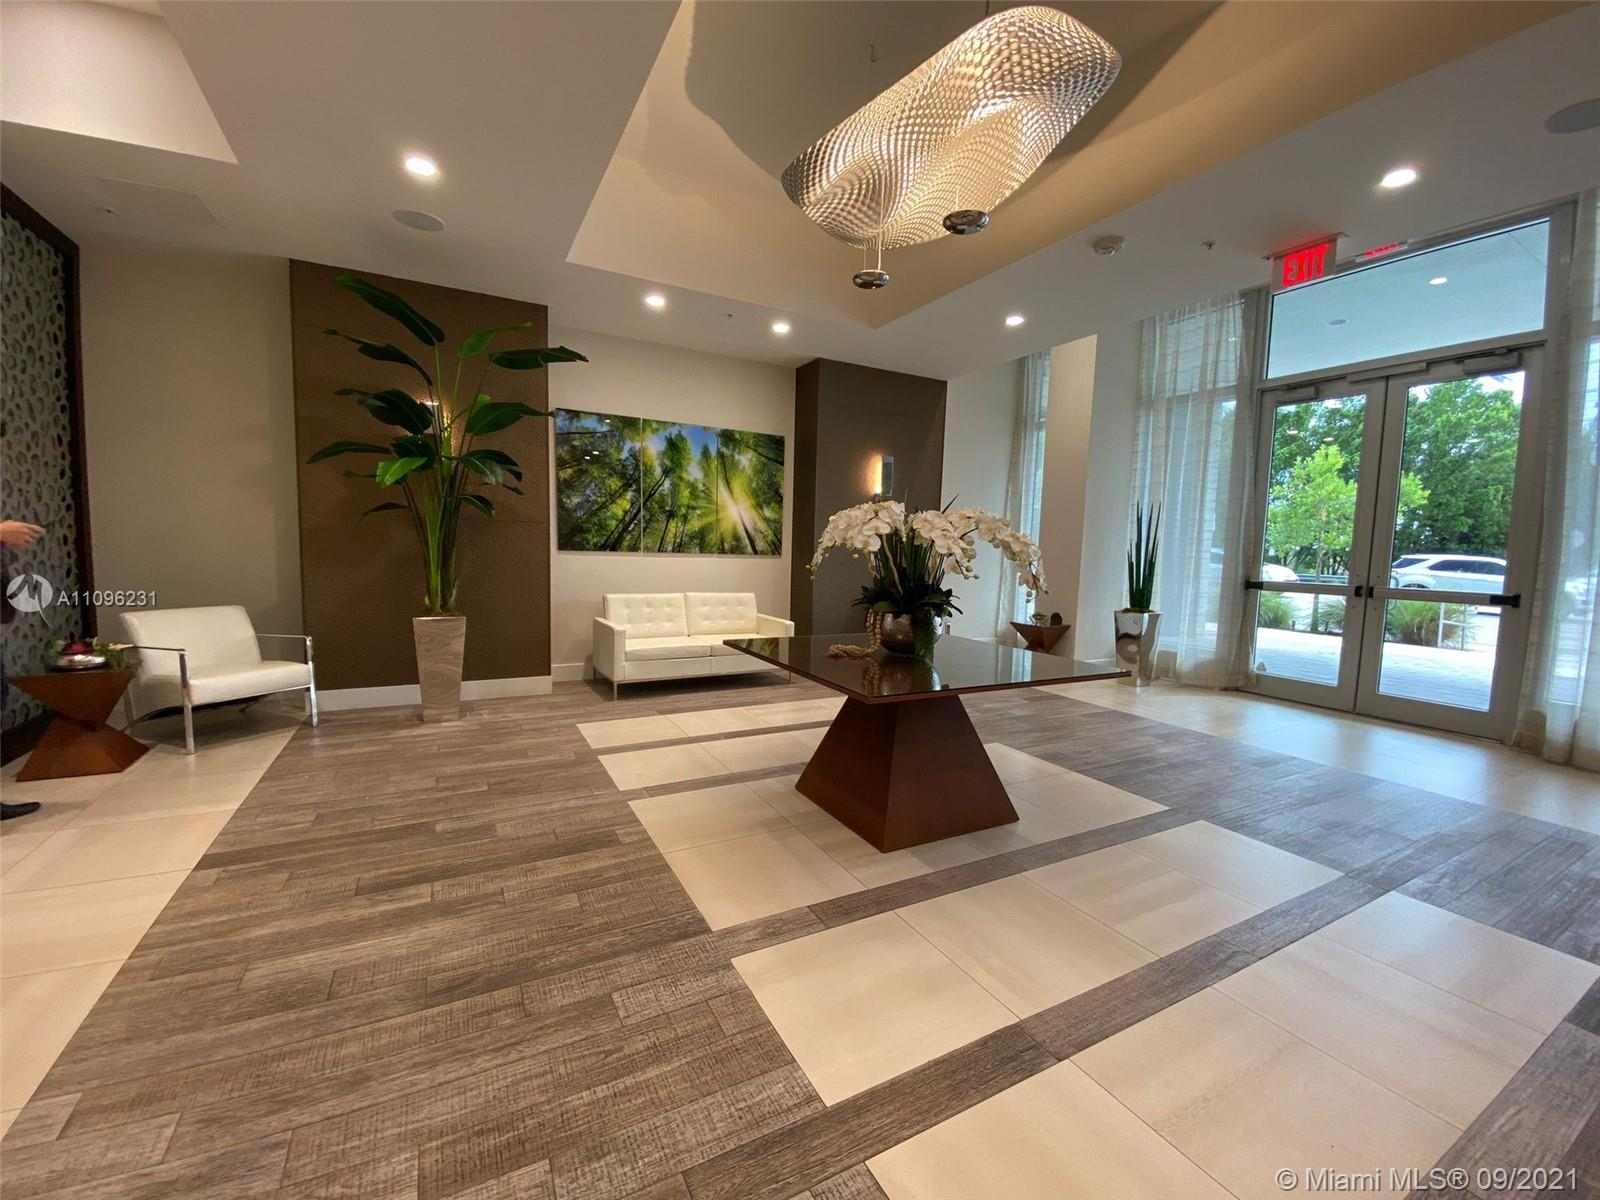 Midtown Doral - Building 4 #207 - 7875 NW 107th Ave #207, Doral, FL 33178